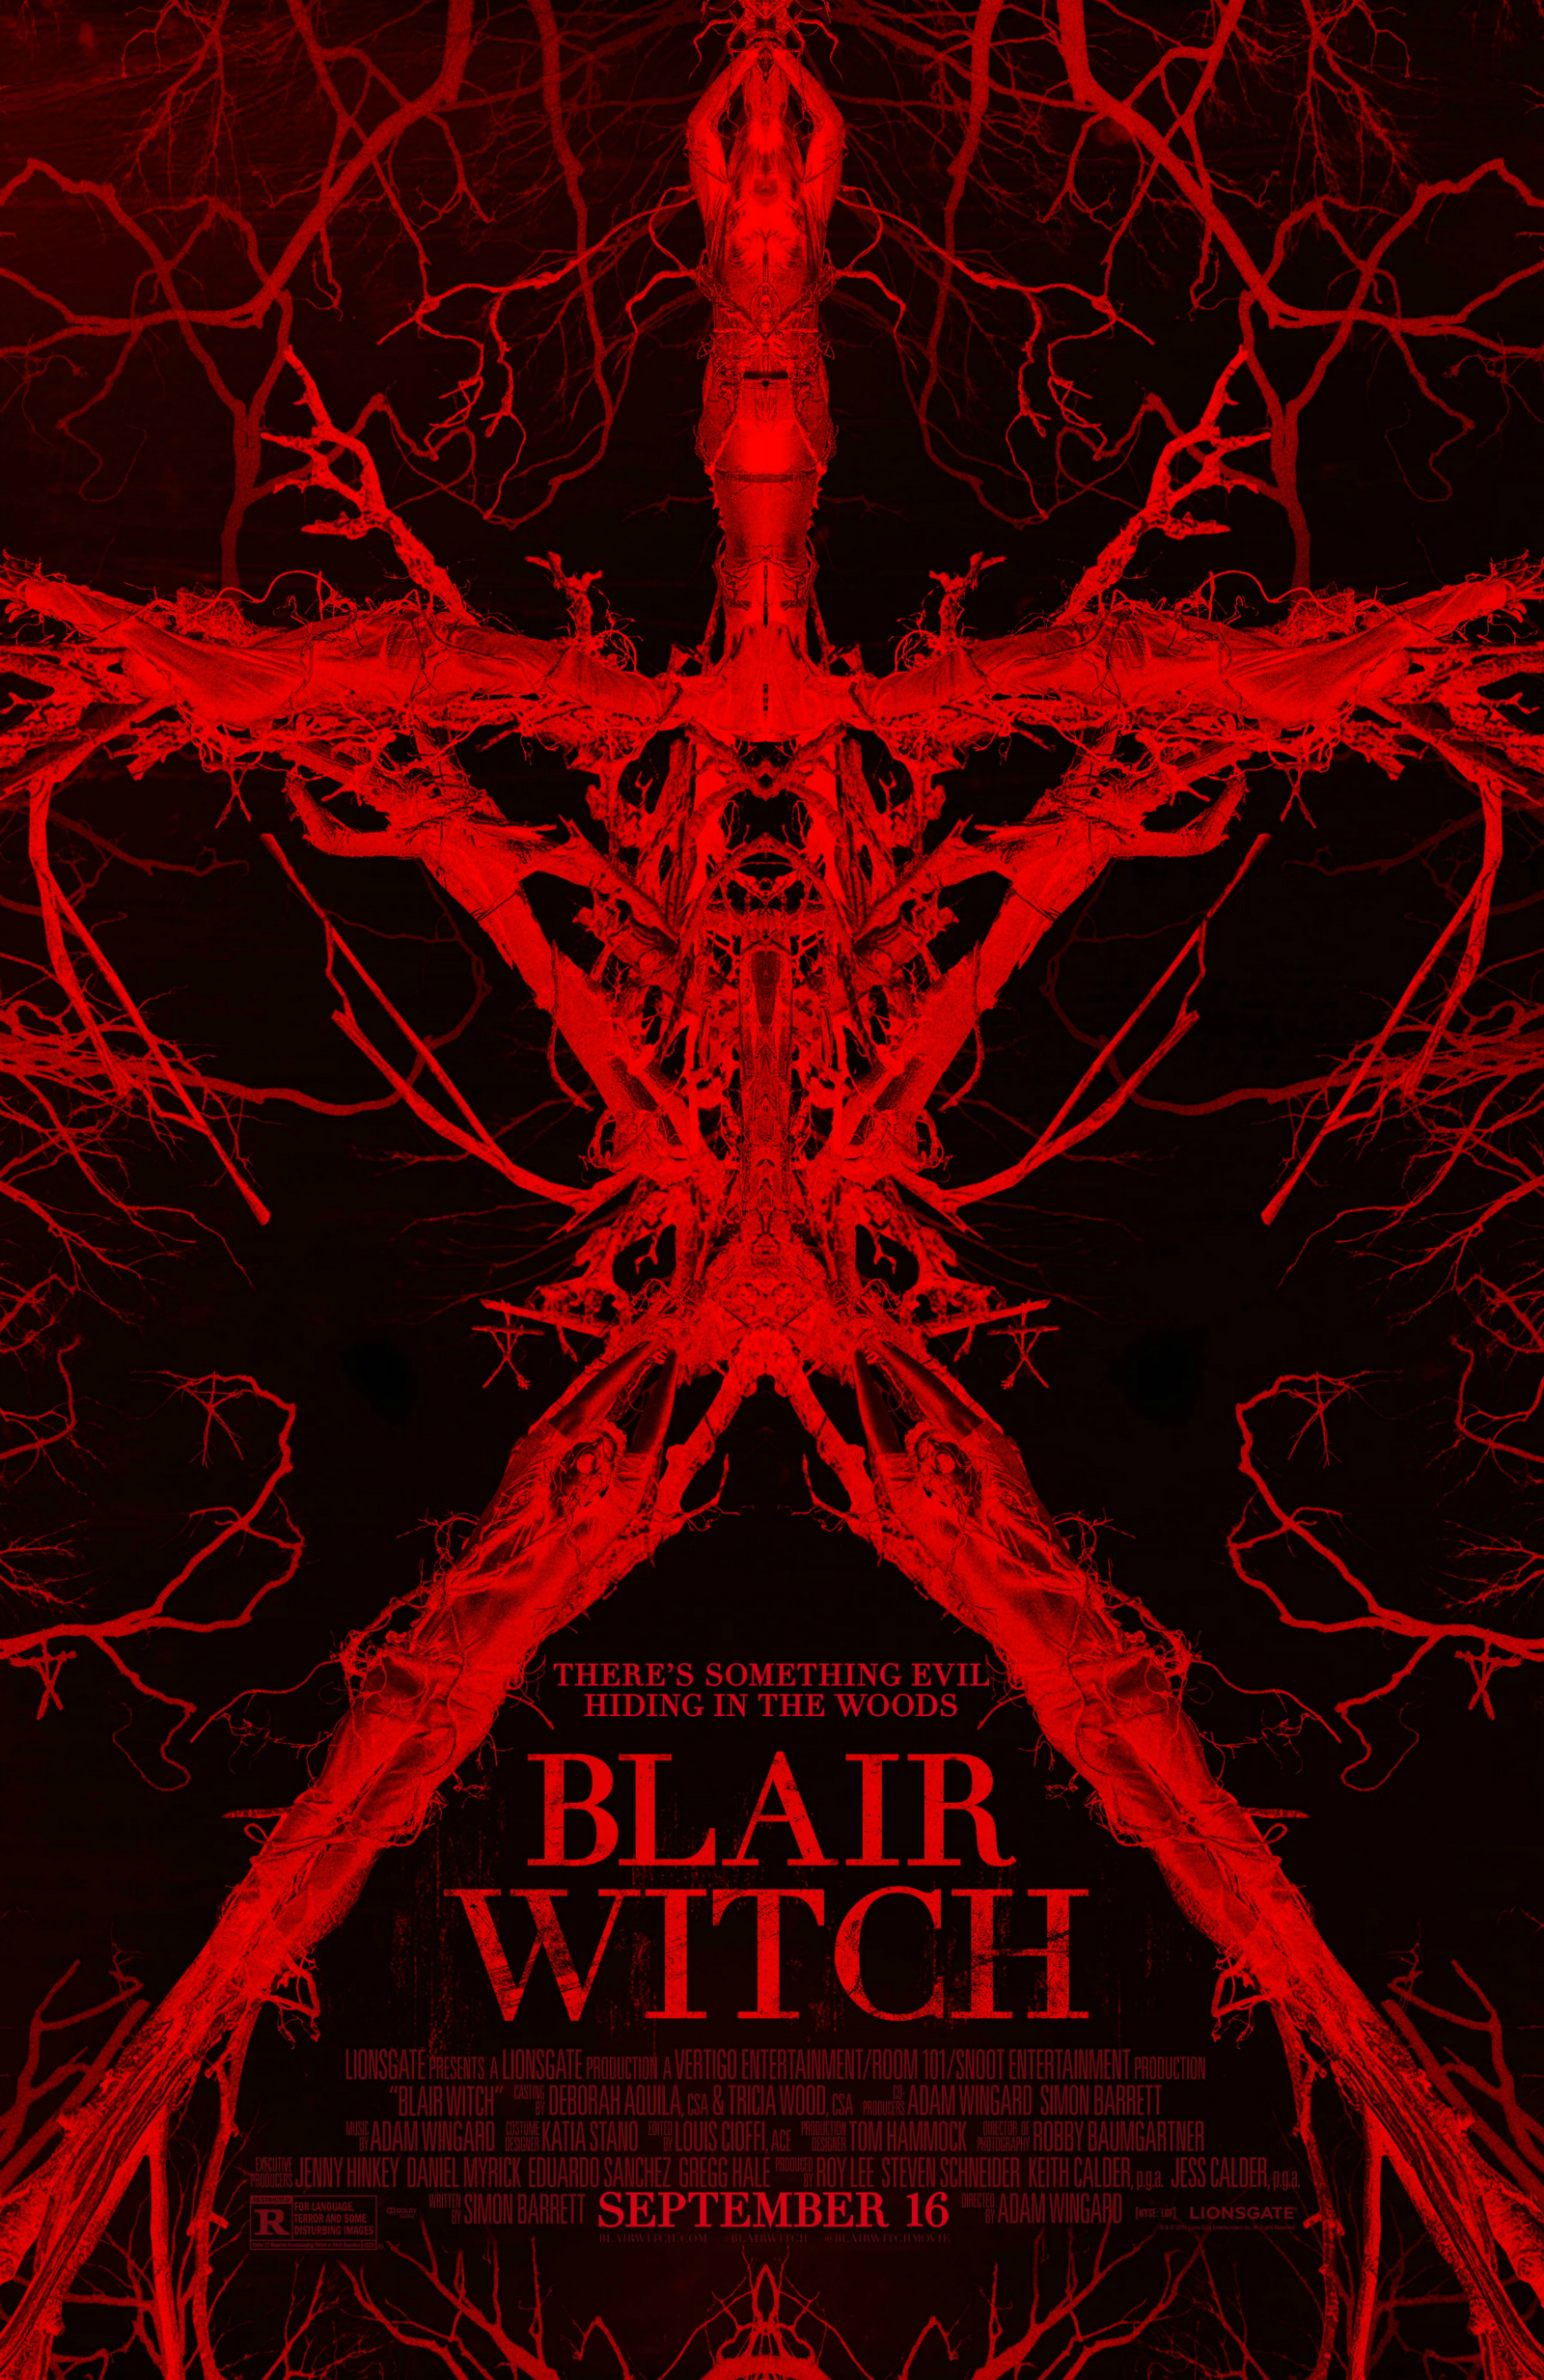 blair-witch-2016-trailer-poster.jpg